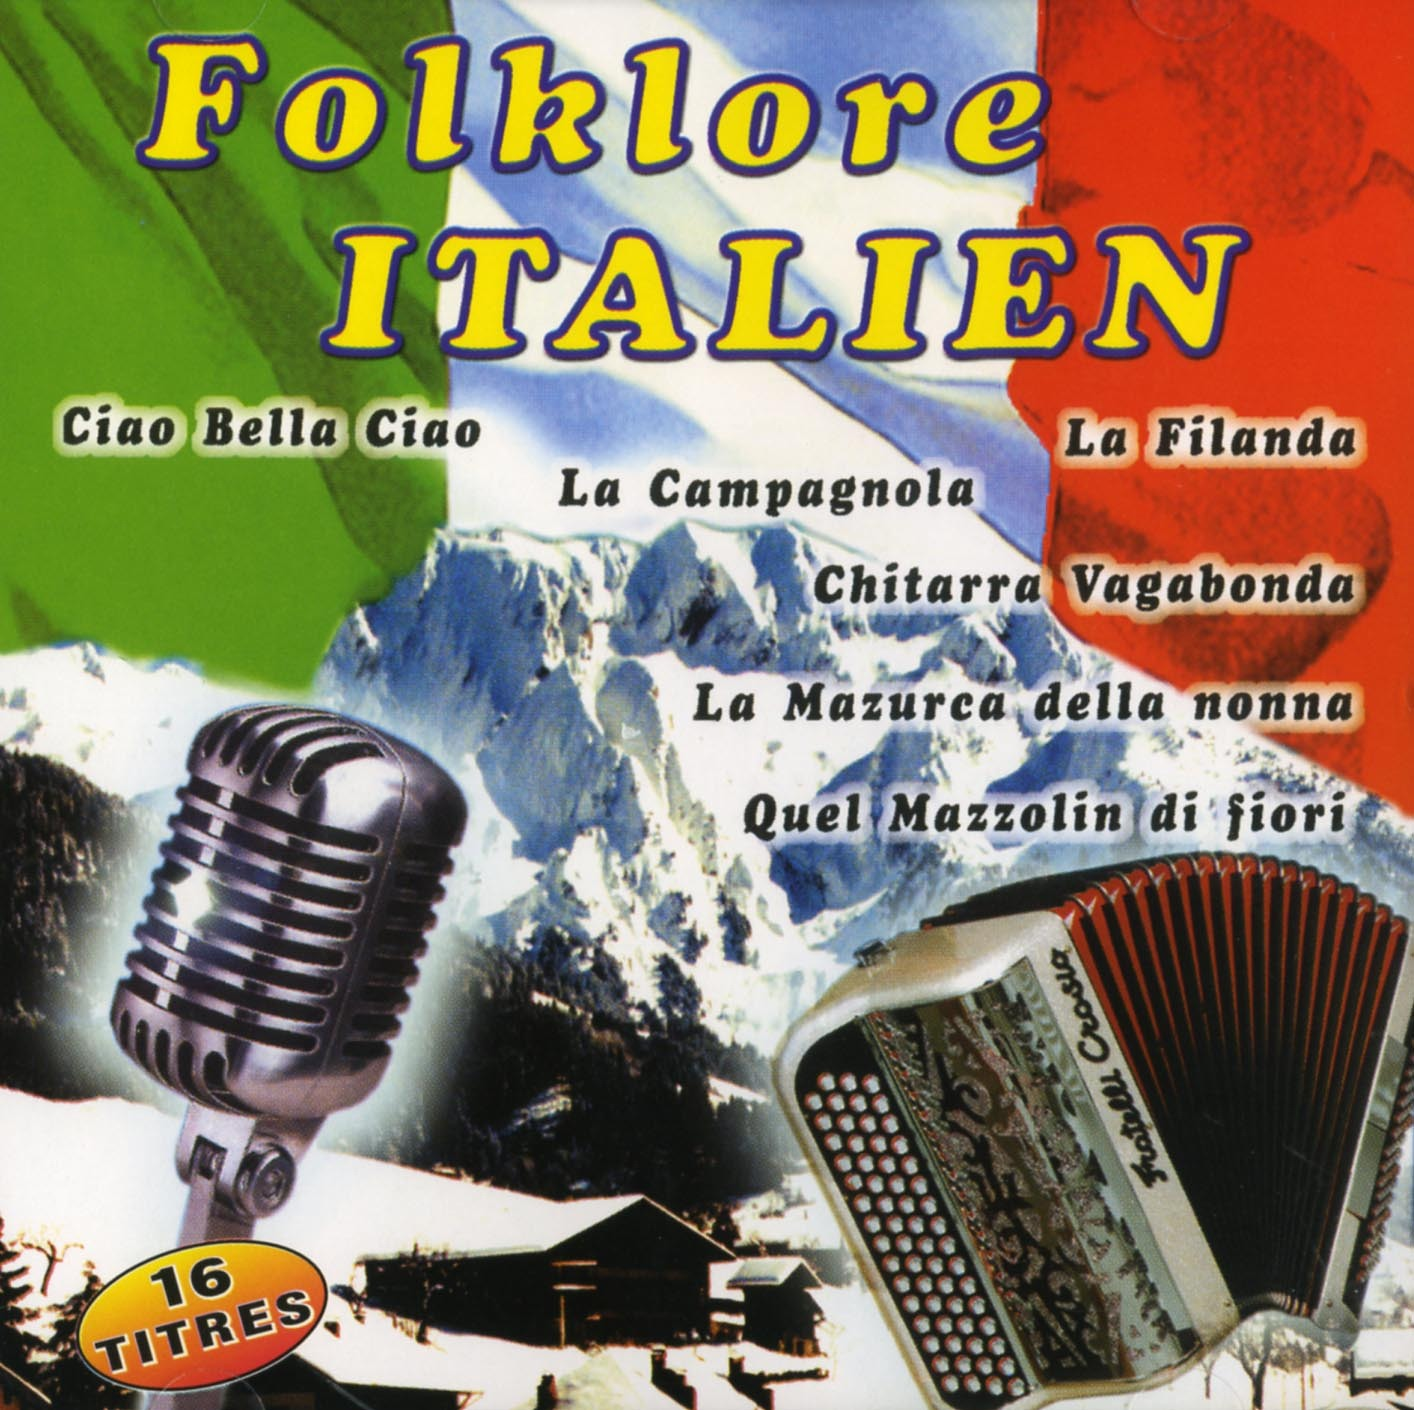 FOLKLORE ITALIEN - CD